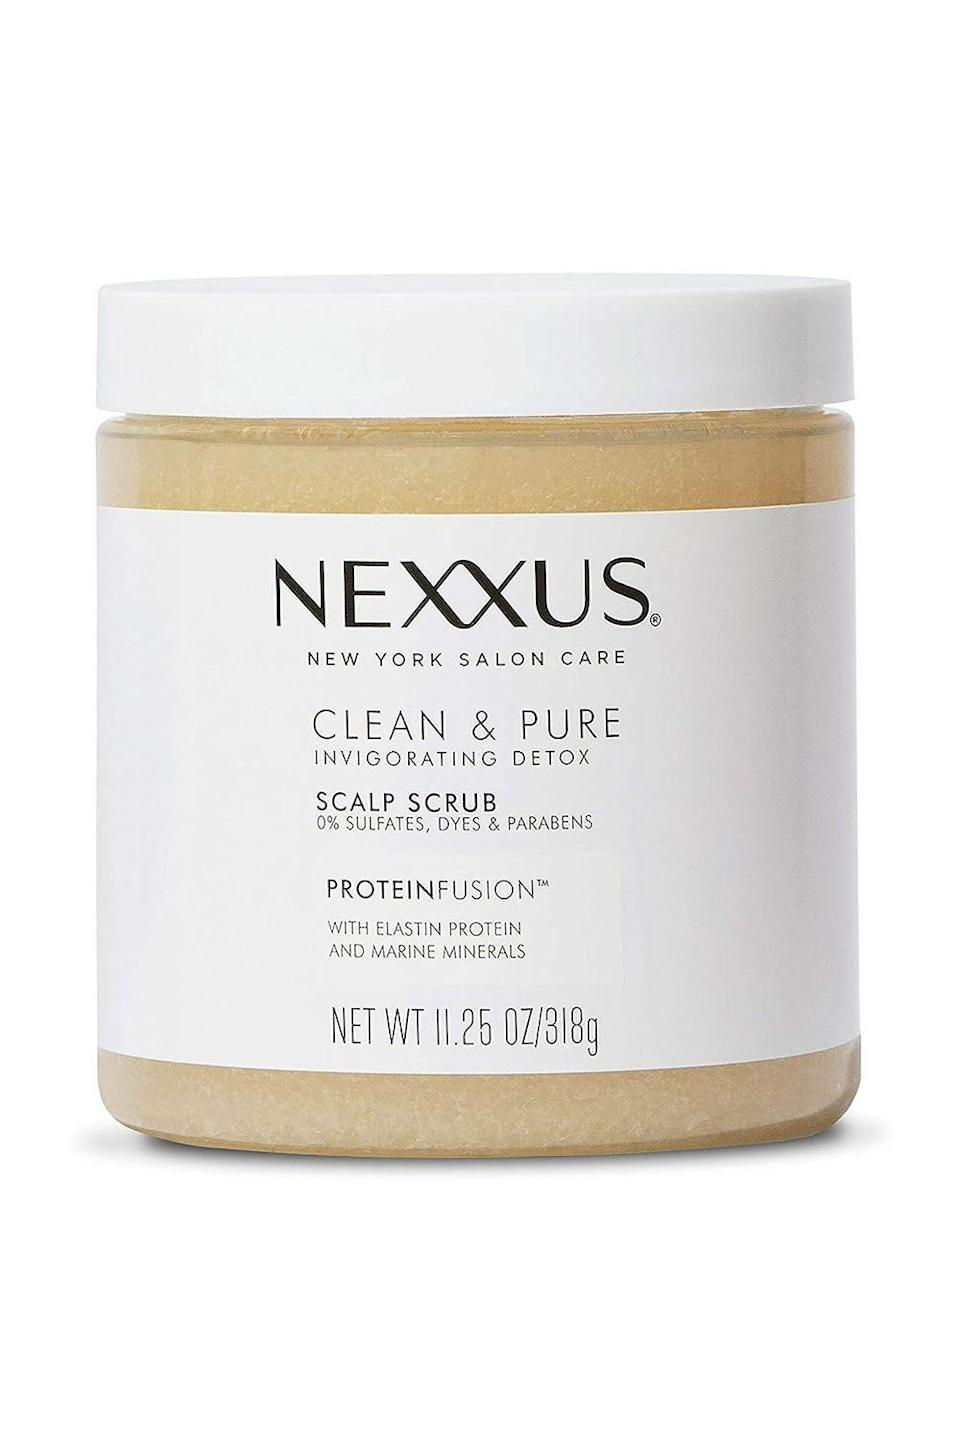 """<p><strong>Nexxus</strong></p><p>target.com</p><p><strong>$14.99</strong></p><p><a href=""""https://www.target.com/p/nexxus-clean-and-pure-scalp-scrub-11-25-fl-oz/-/A-75561069"""" rel=""""nofollow noopener"""" target=""""_blank"""" data-ylk=""""slk:Shop Now"""" class=""""link rapid-noclick-resp"""">Shop Now</a></p><p>Just because you can't spend a ton on a scalp scrub doesn't mean you have to settle—this <a href=""""https://www.cosmopolitan.com/style-beauty/beauty/g25019634/best-drugstore-shampoo-brands/"""" rel=""""nofollow noopener"""" target=""""_blank"""" data-ylk=""""slk:drugstore"""" class=""""link rapid-noclick-resp"""">drugstore</a> option checks off all the boxes. It gently exfoliates your scalp, while also <strong>infusing it with elastin protein and marine minerals to help strengthen</strong> and moisturize your hair. </p>"""